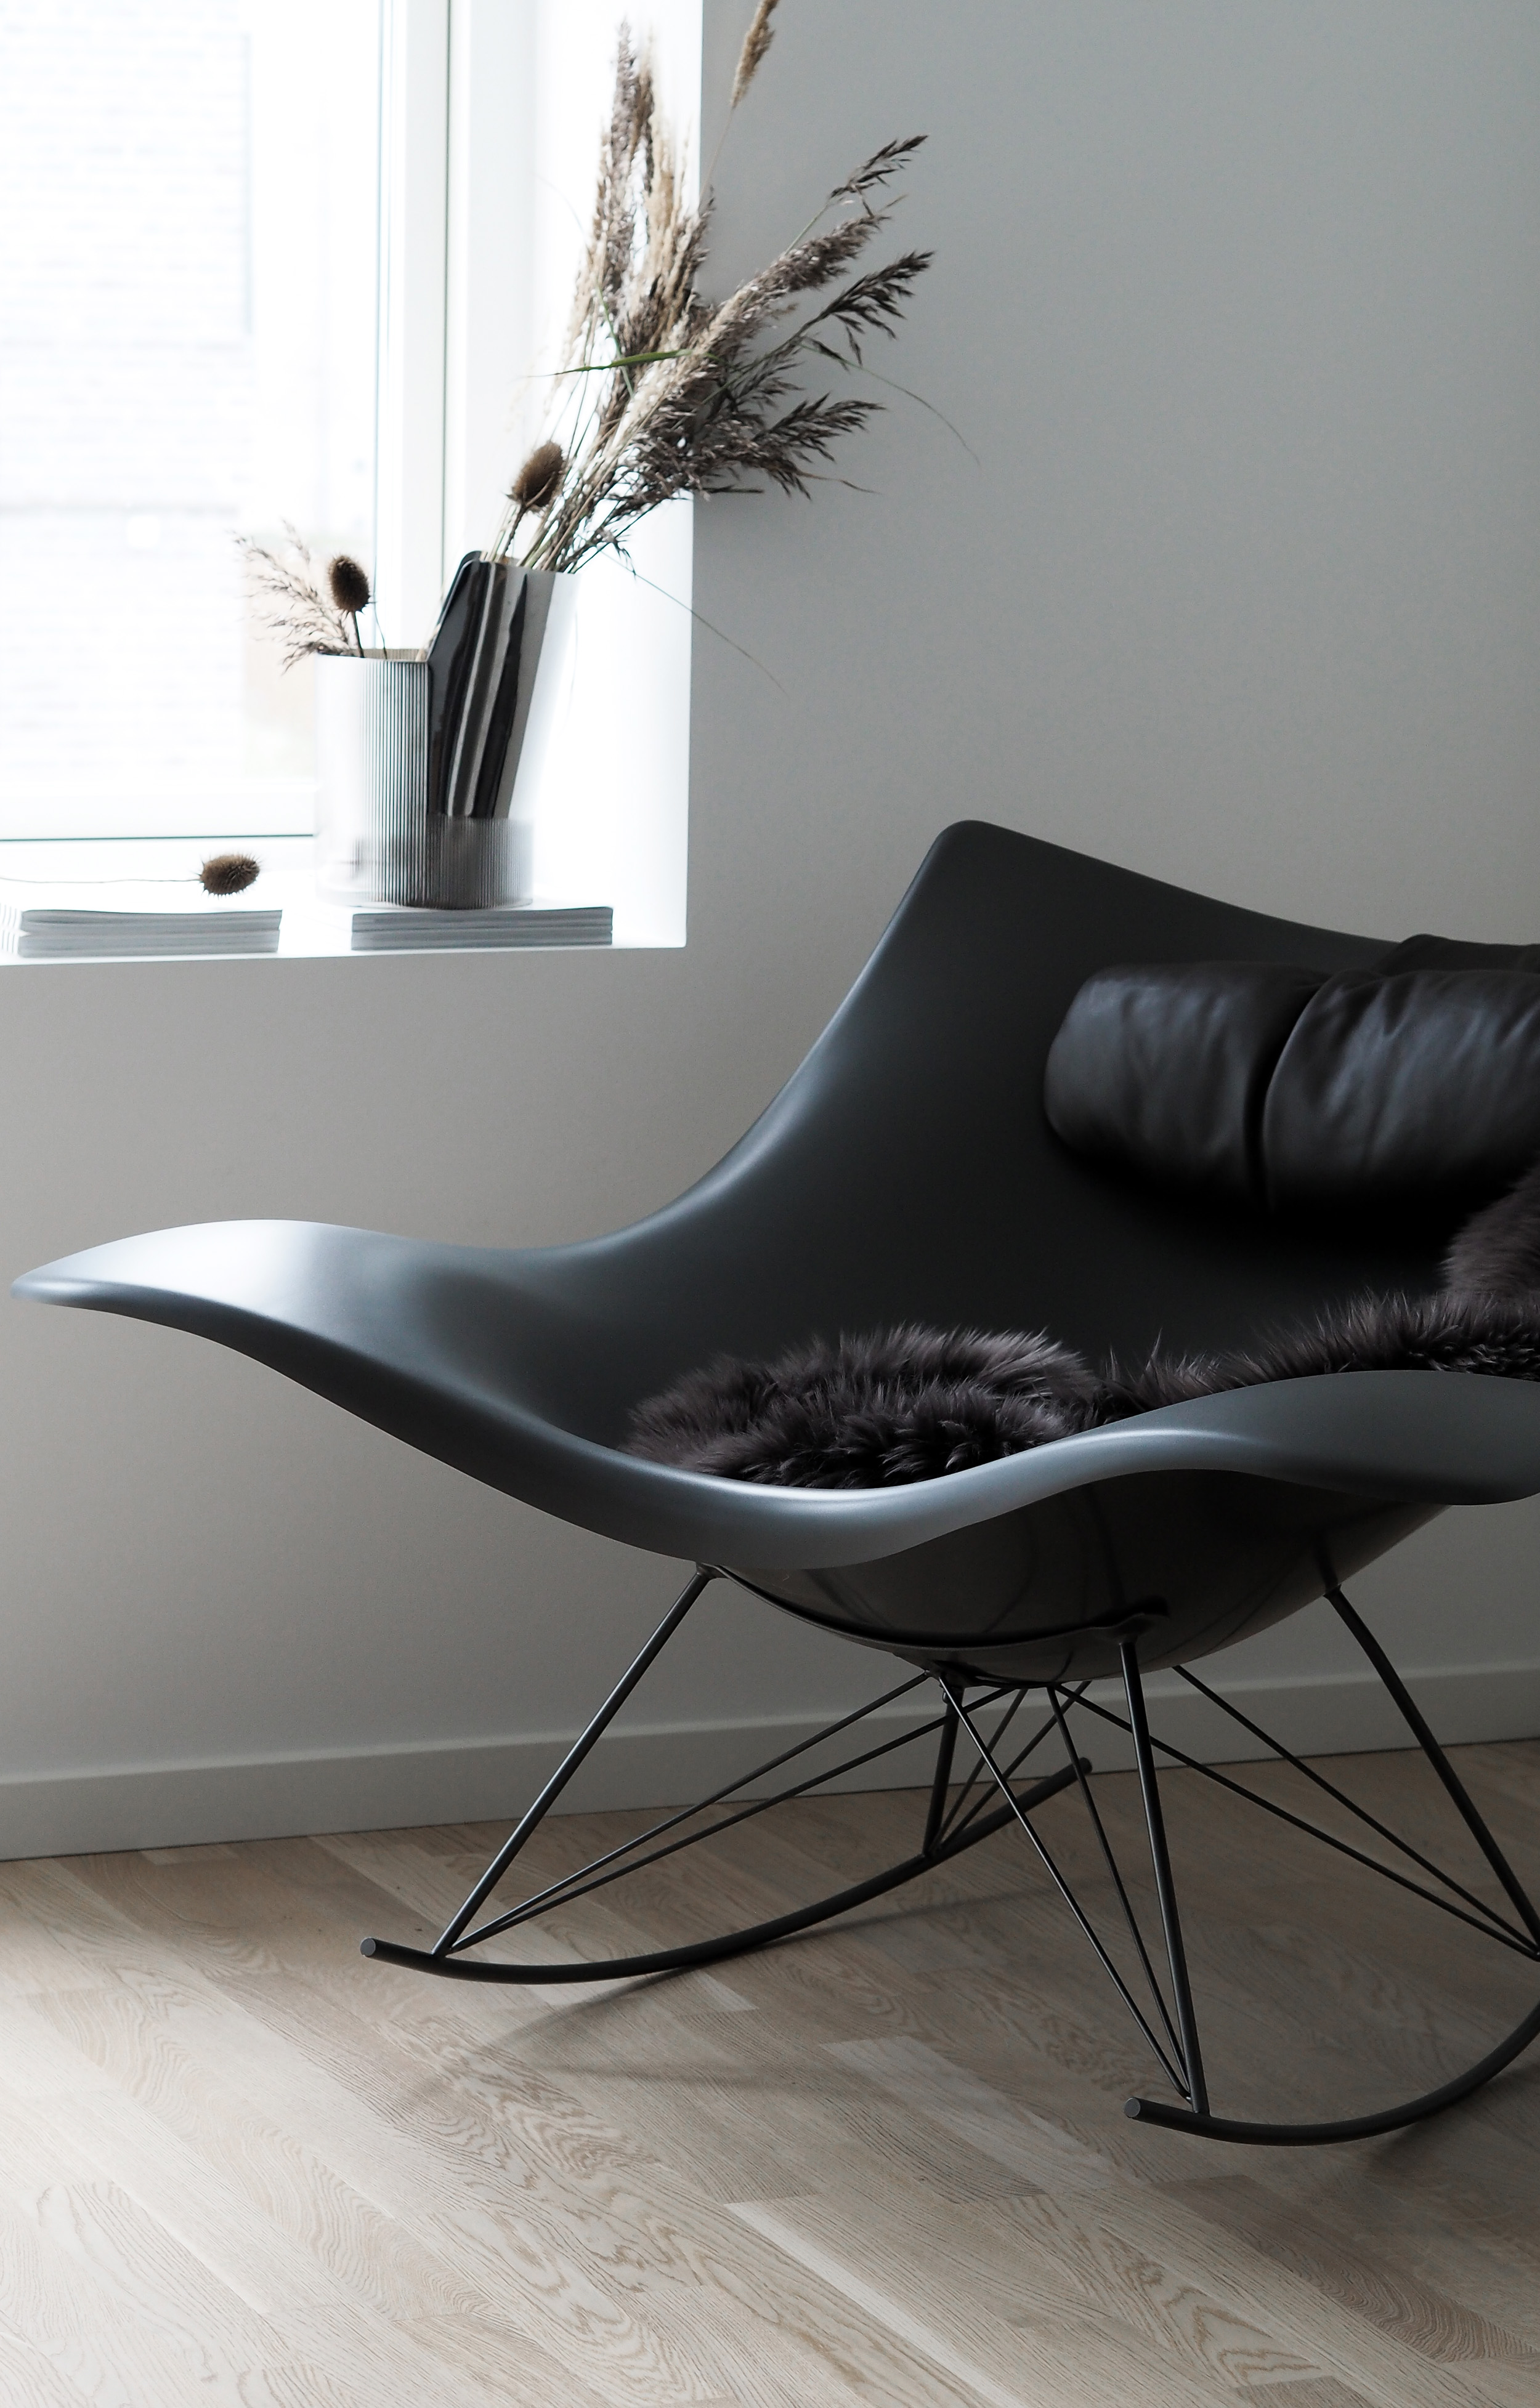 The Stingray Rocker Chair Designed By Thomas Pedersen